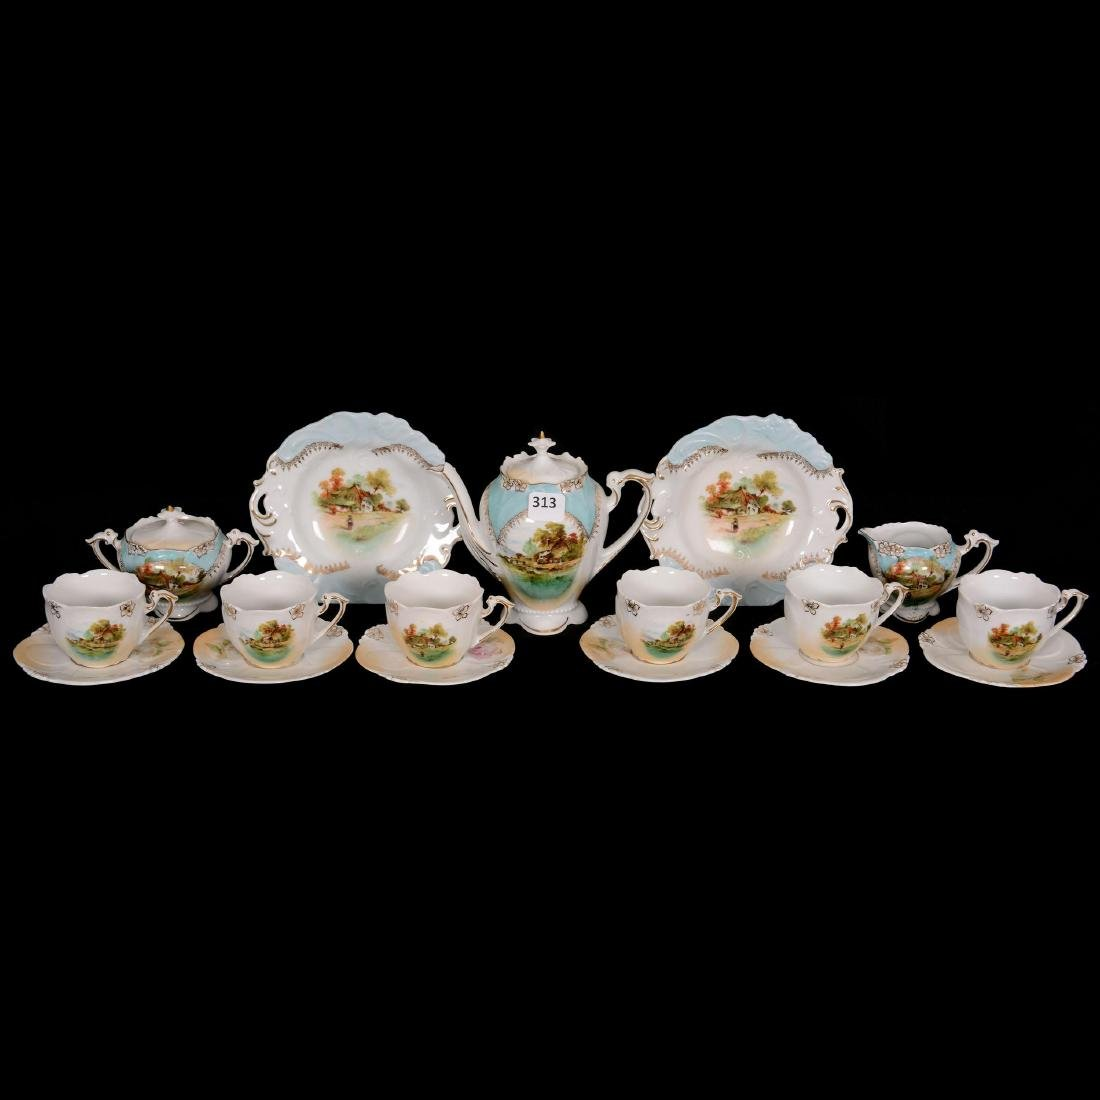 Unmarked R.S. Prussia Child's Tea Set